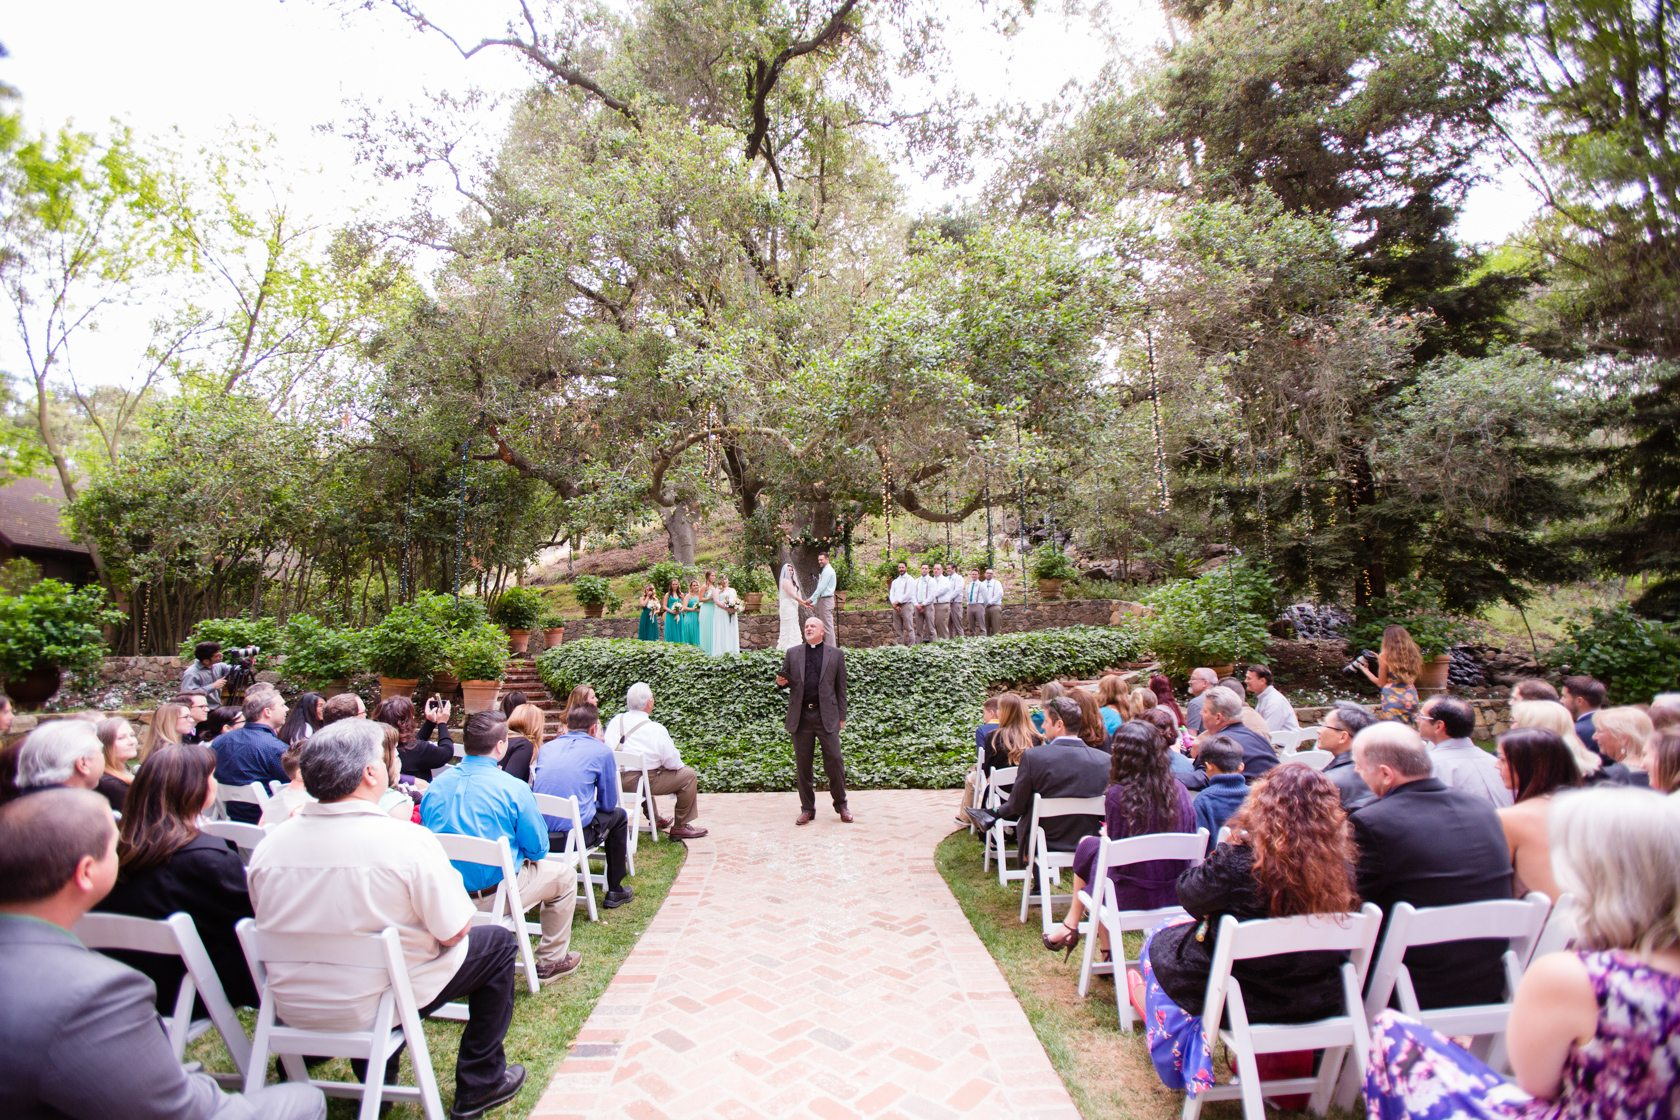 The_Printed_Palette_Wedding_at_Calamigos_Ranch_059.jpg